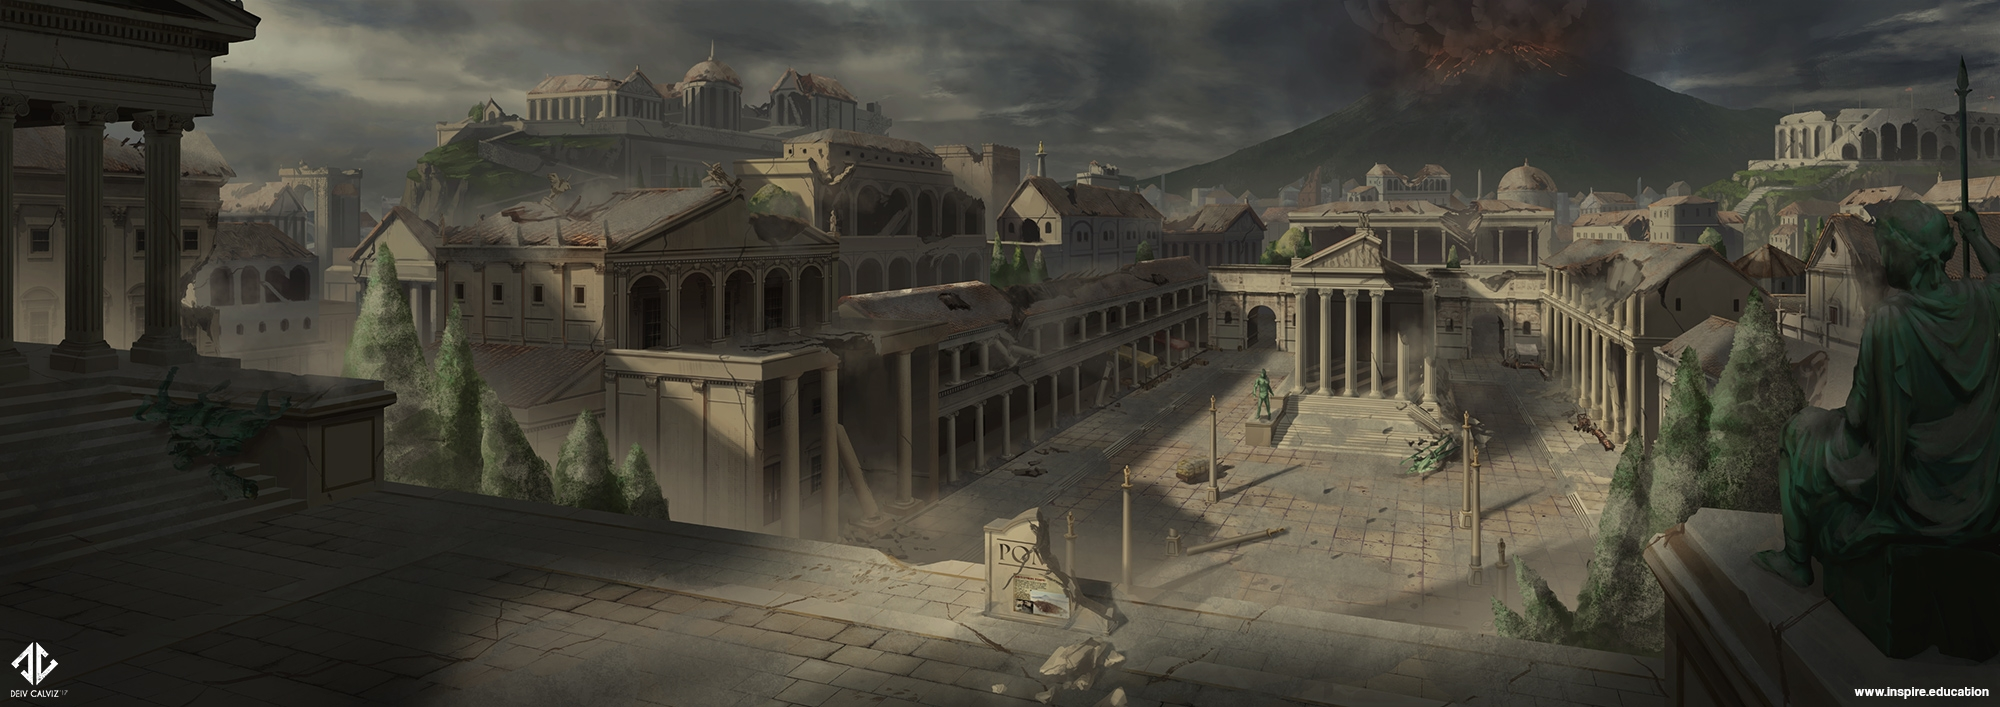 Pompeii_Destroyed_02_Deiv_Calviz